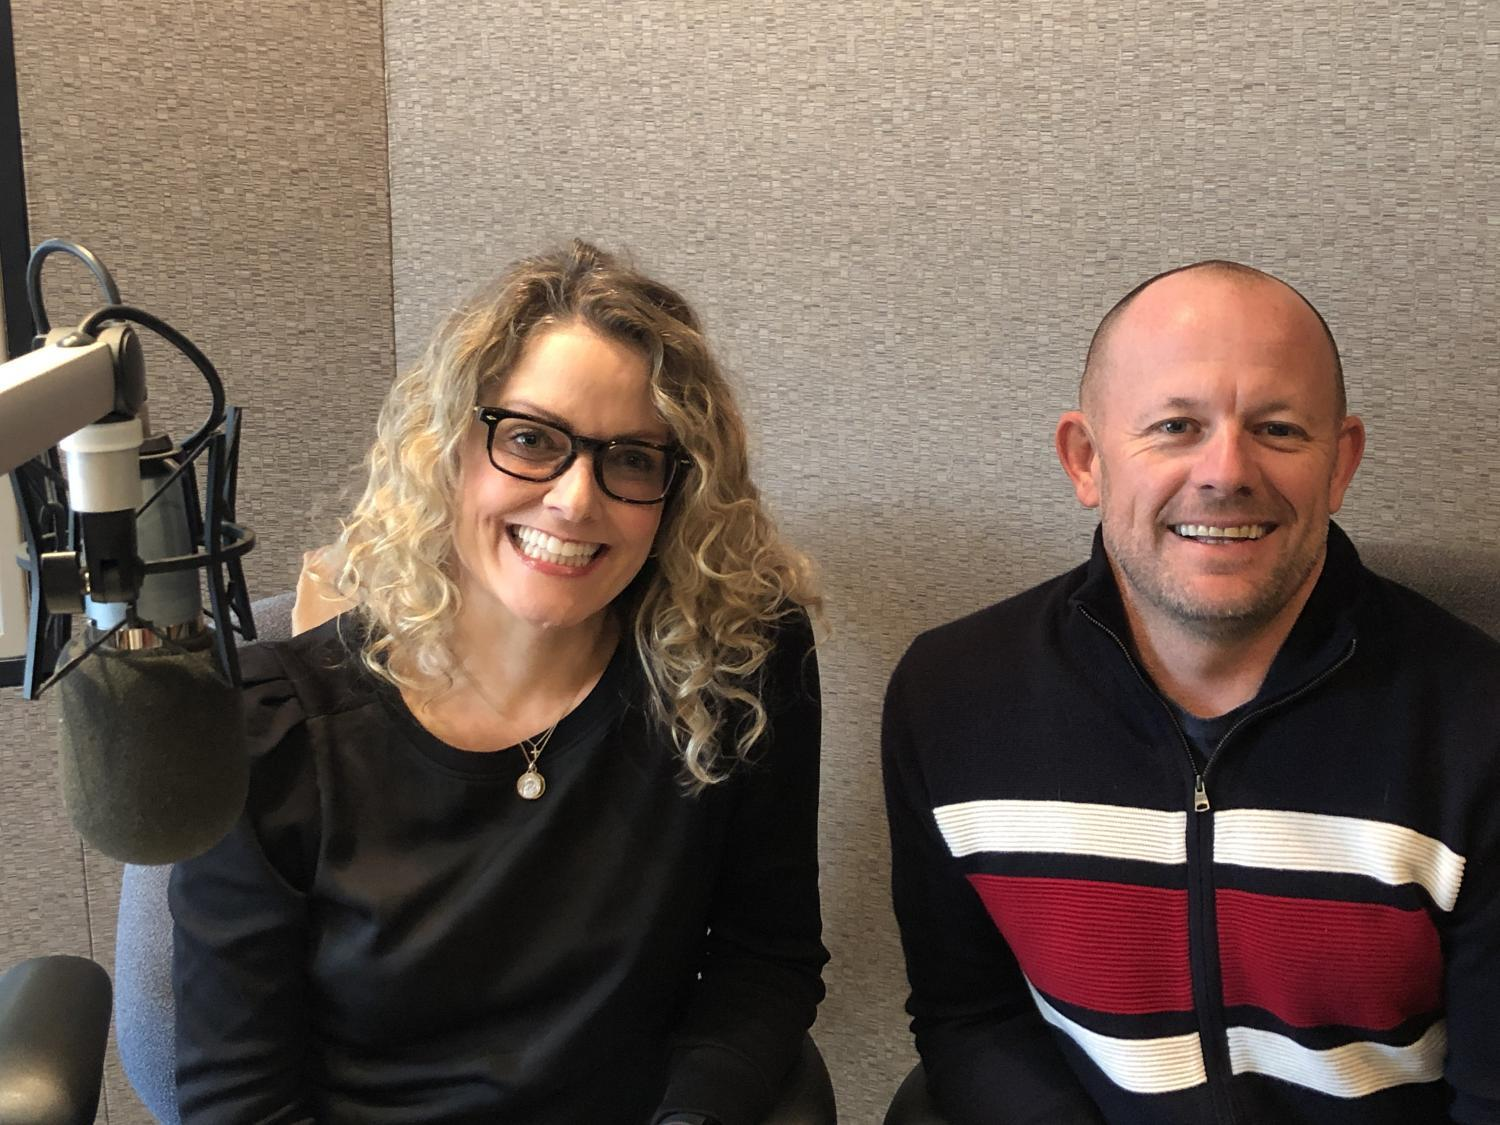 Emily Ryan and Chad Campbell in Studio